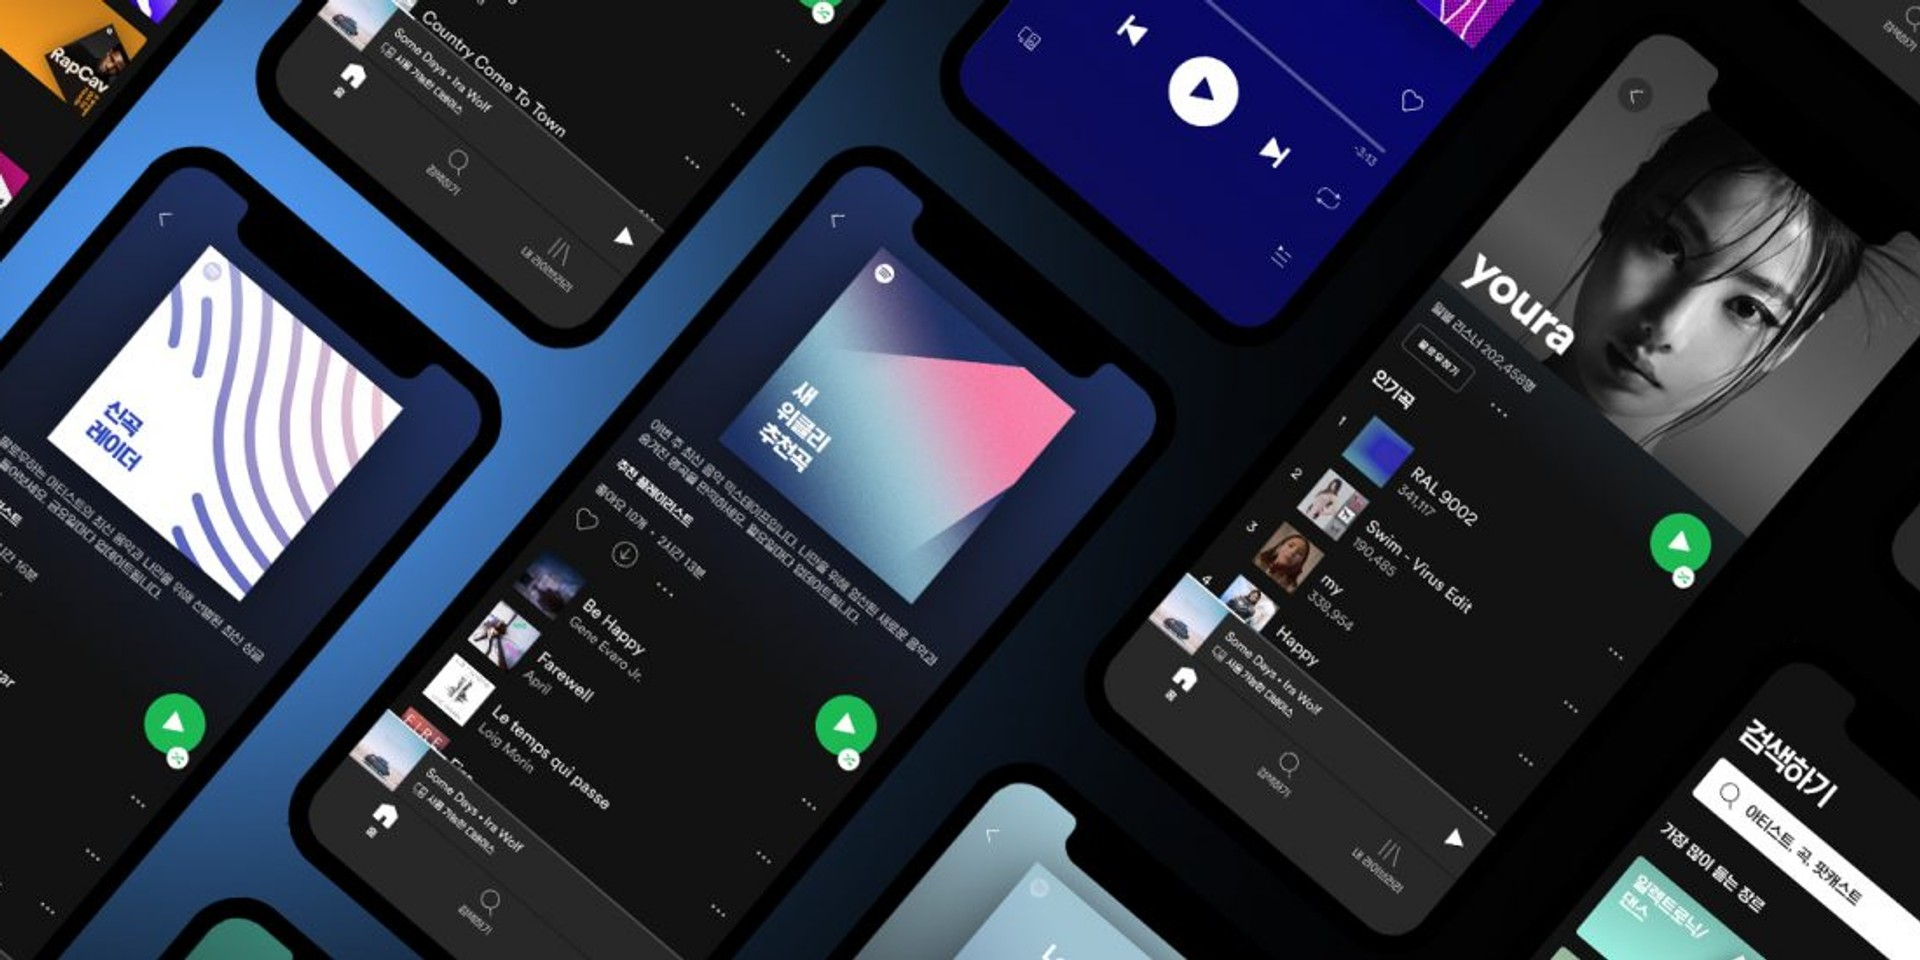 Spotify is finally available in South Korea